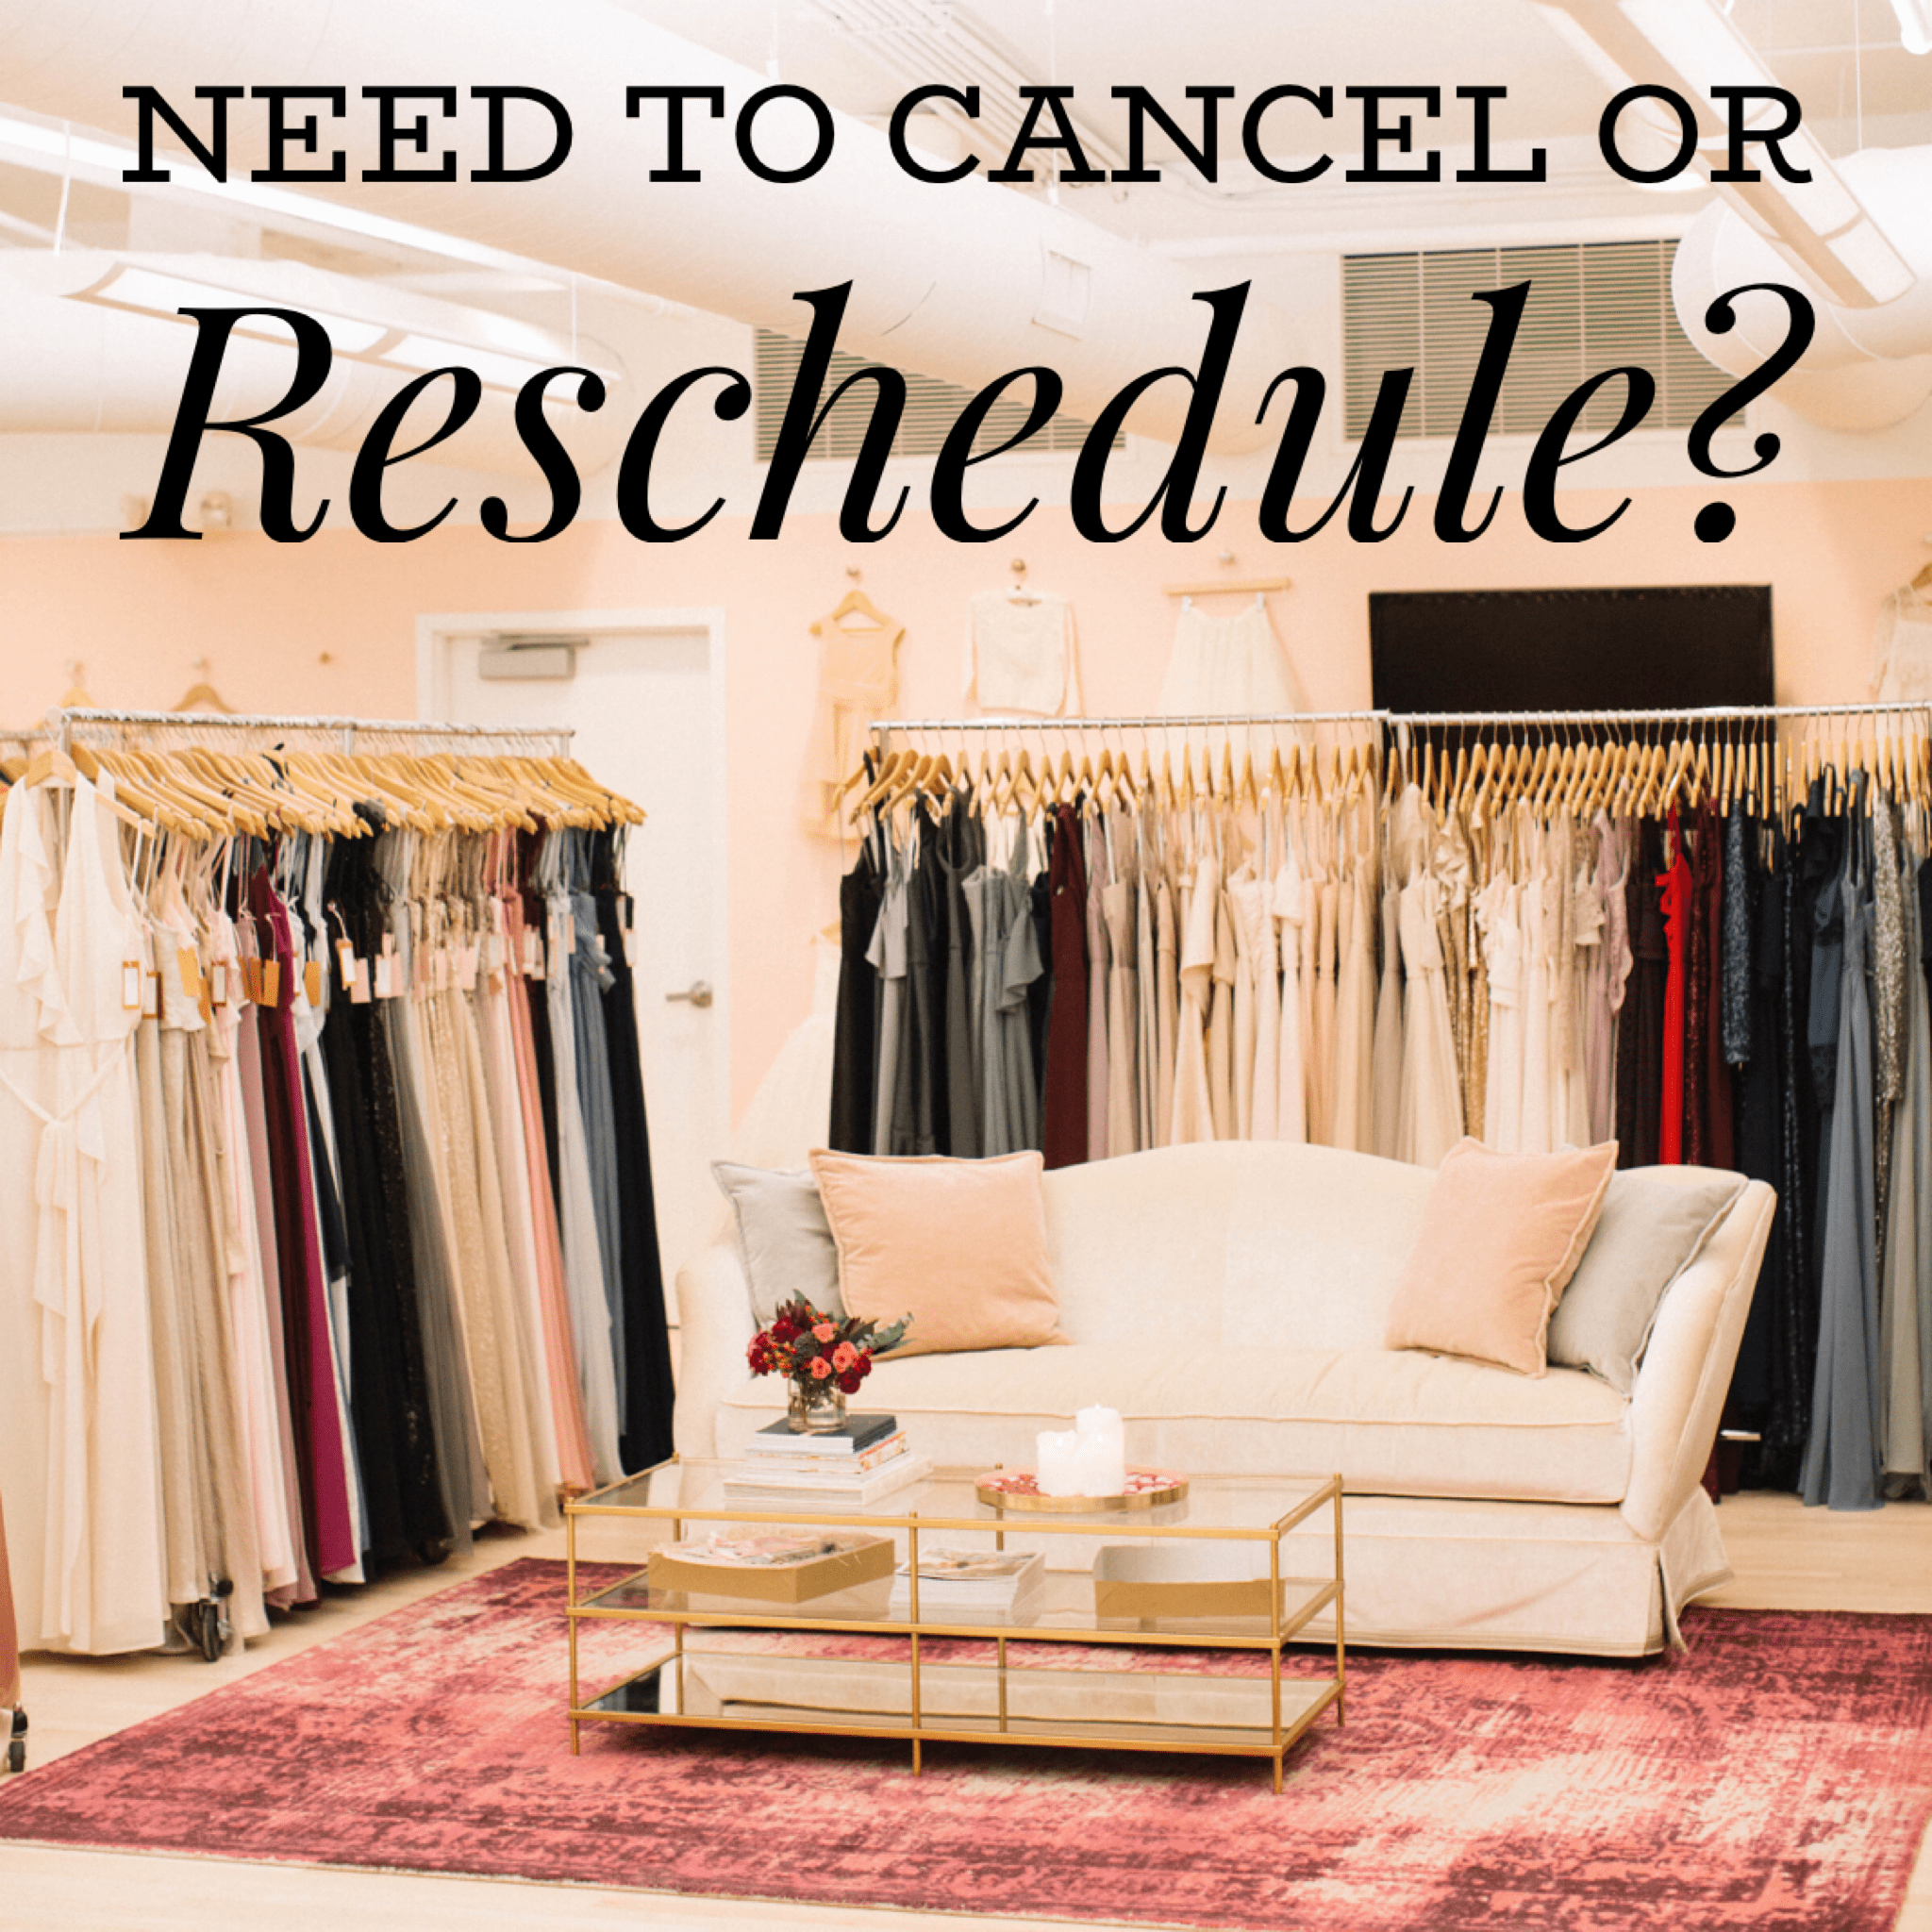 Reschedule your dress purchase appointment